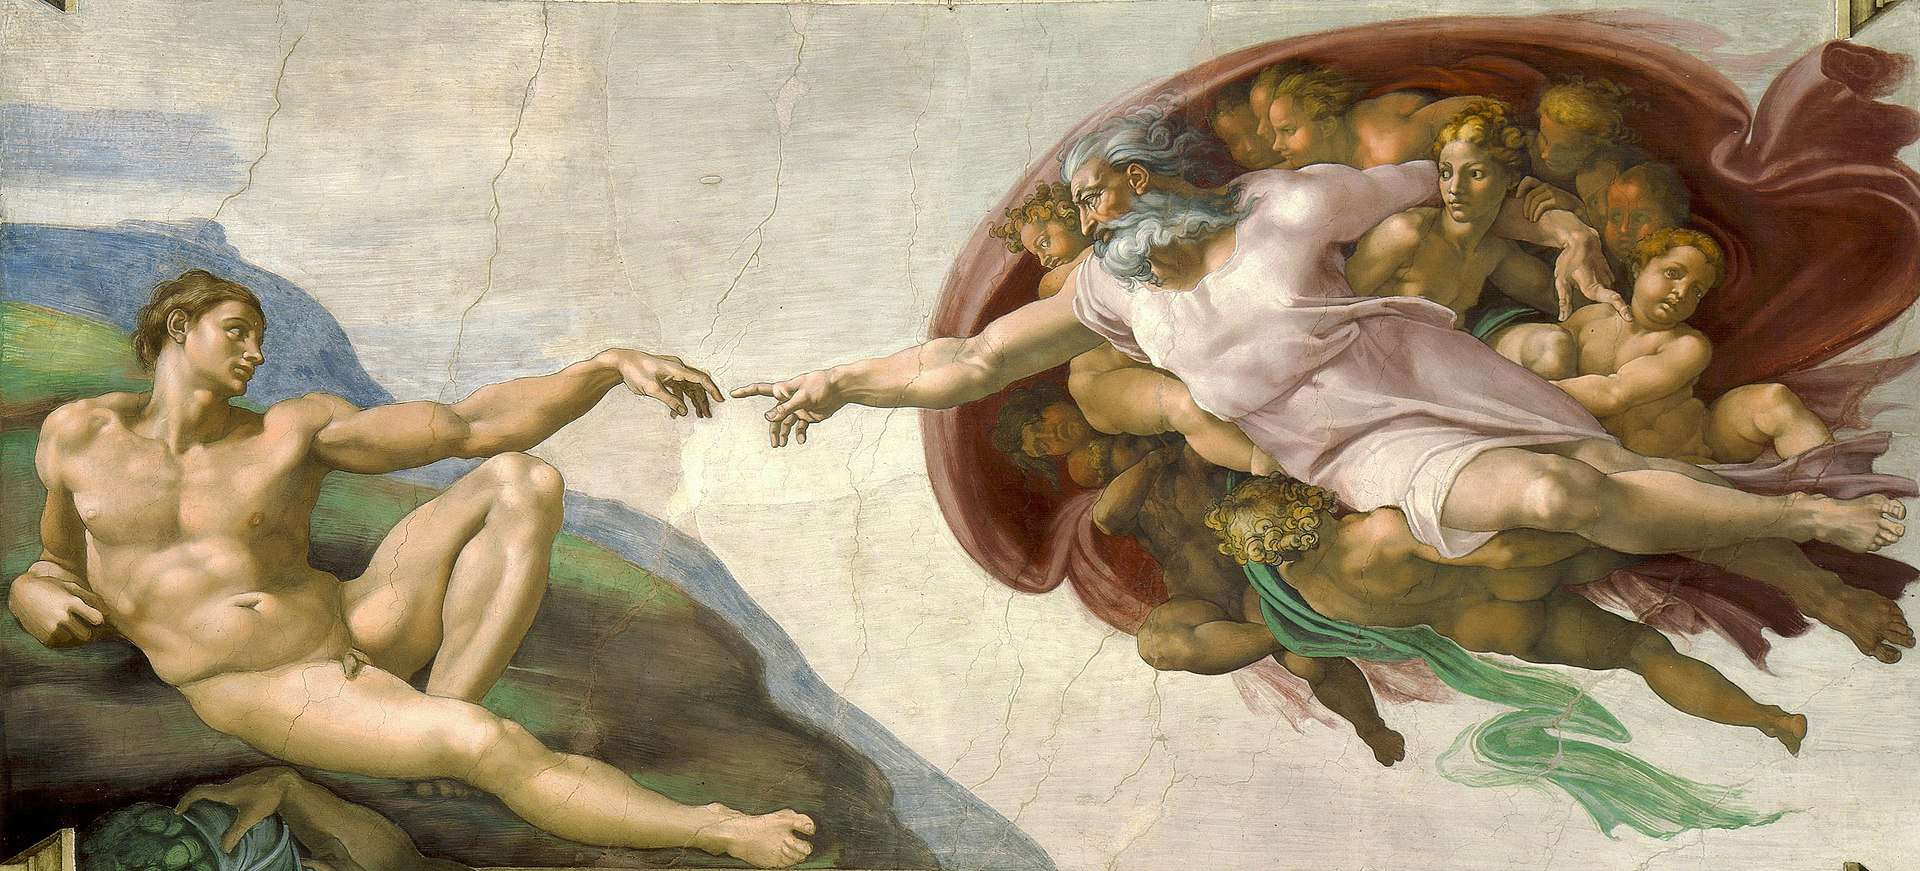 de schepping creation of adam